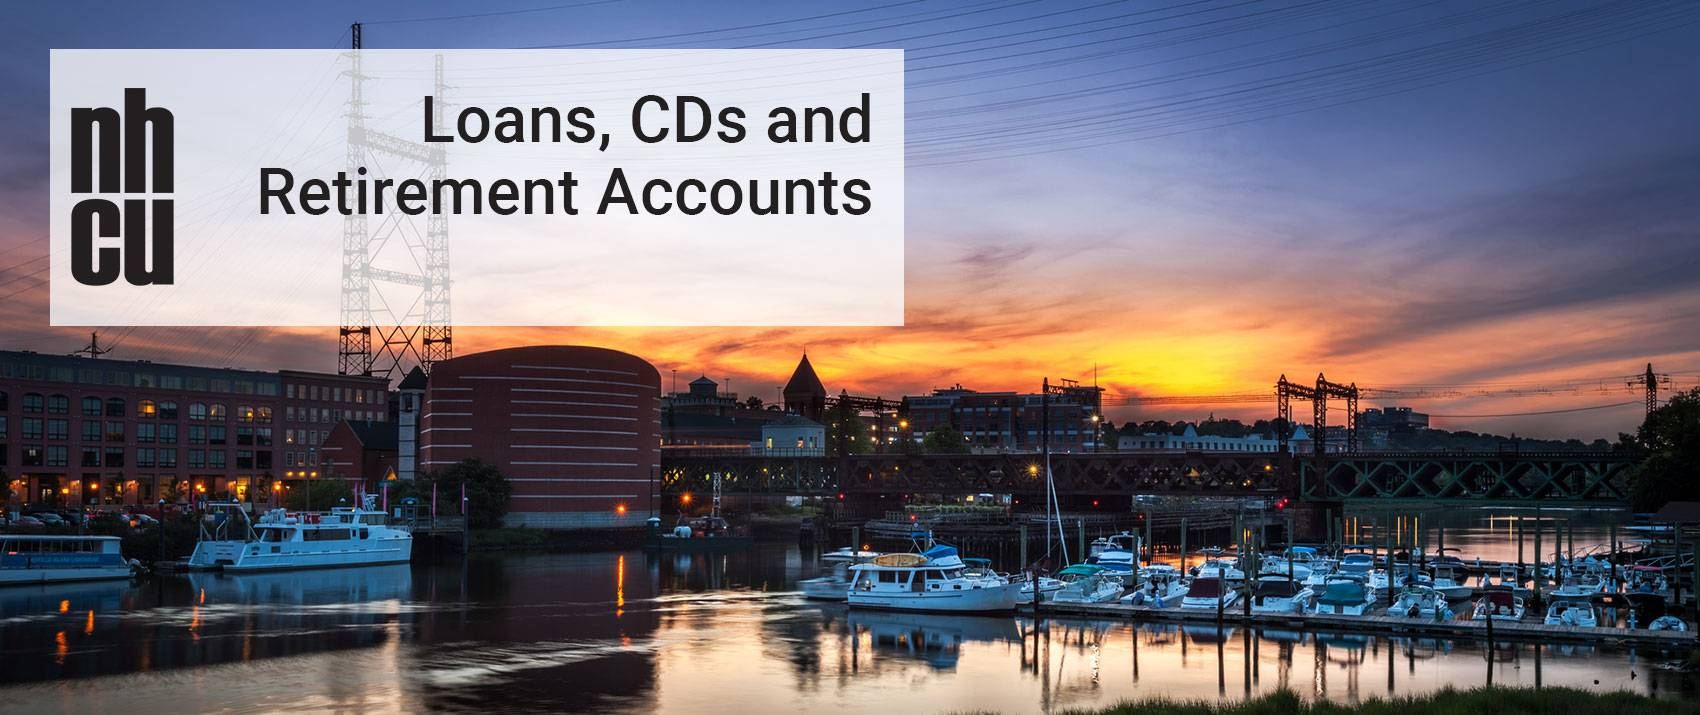 Loans, CDs and Retirement Accounts